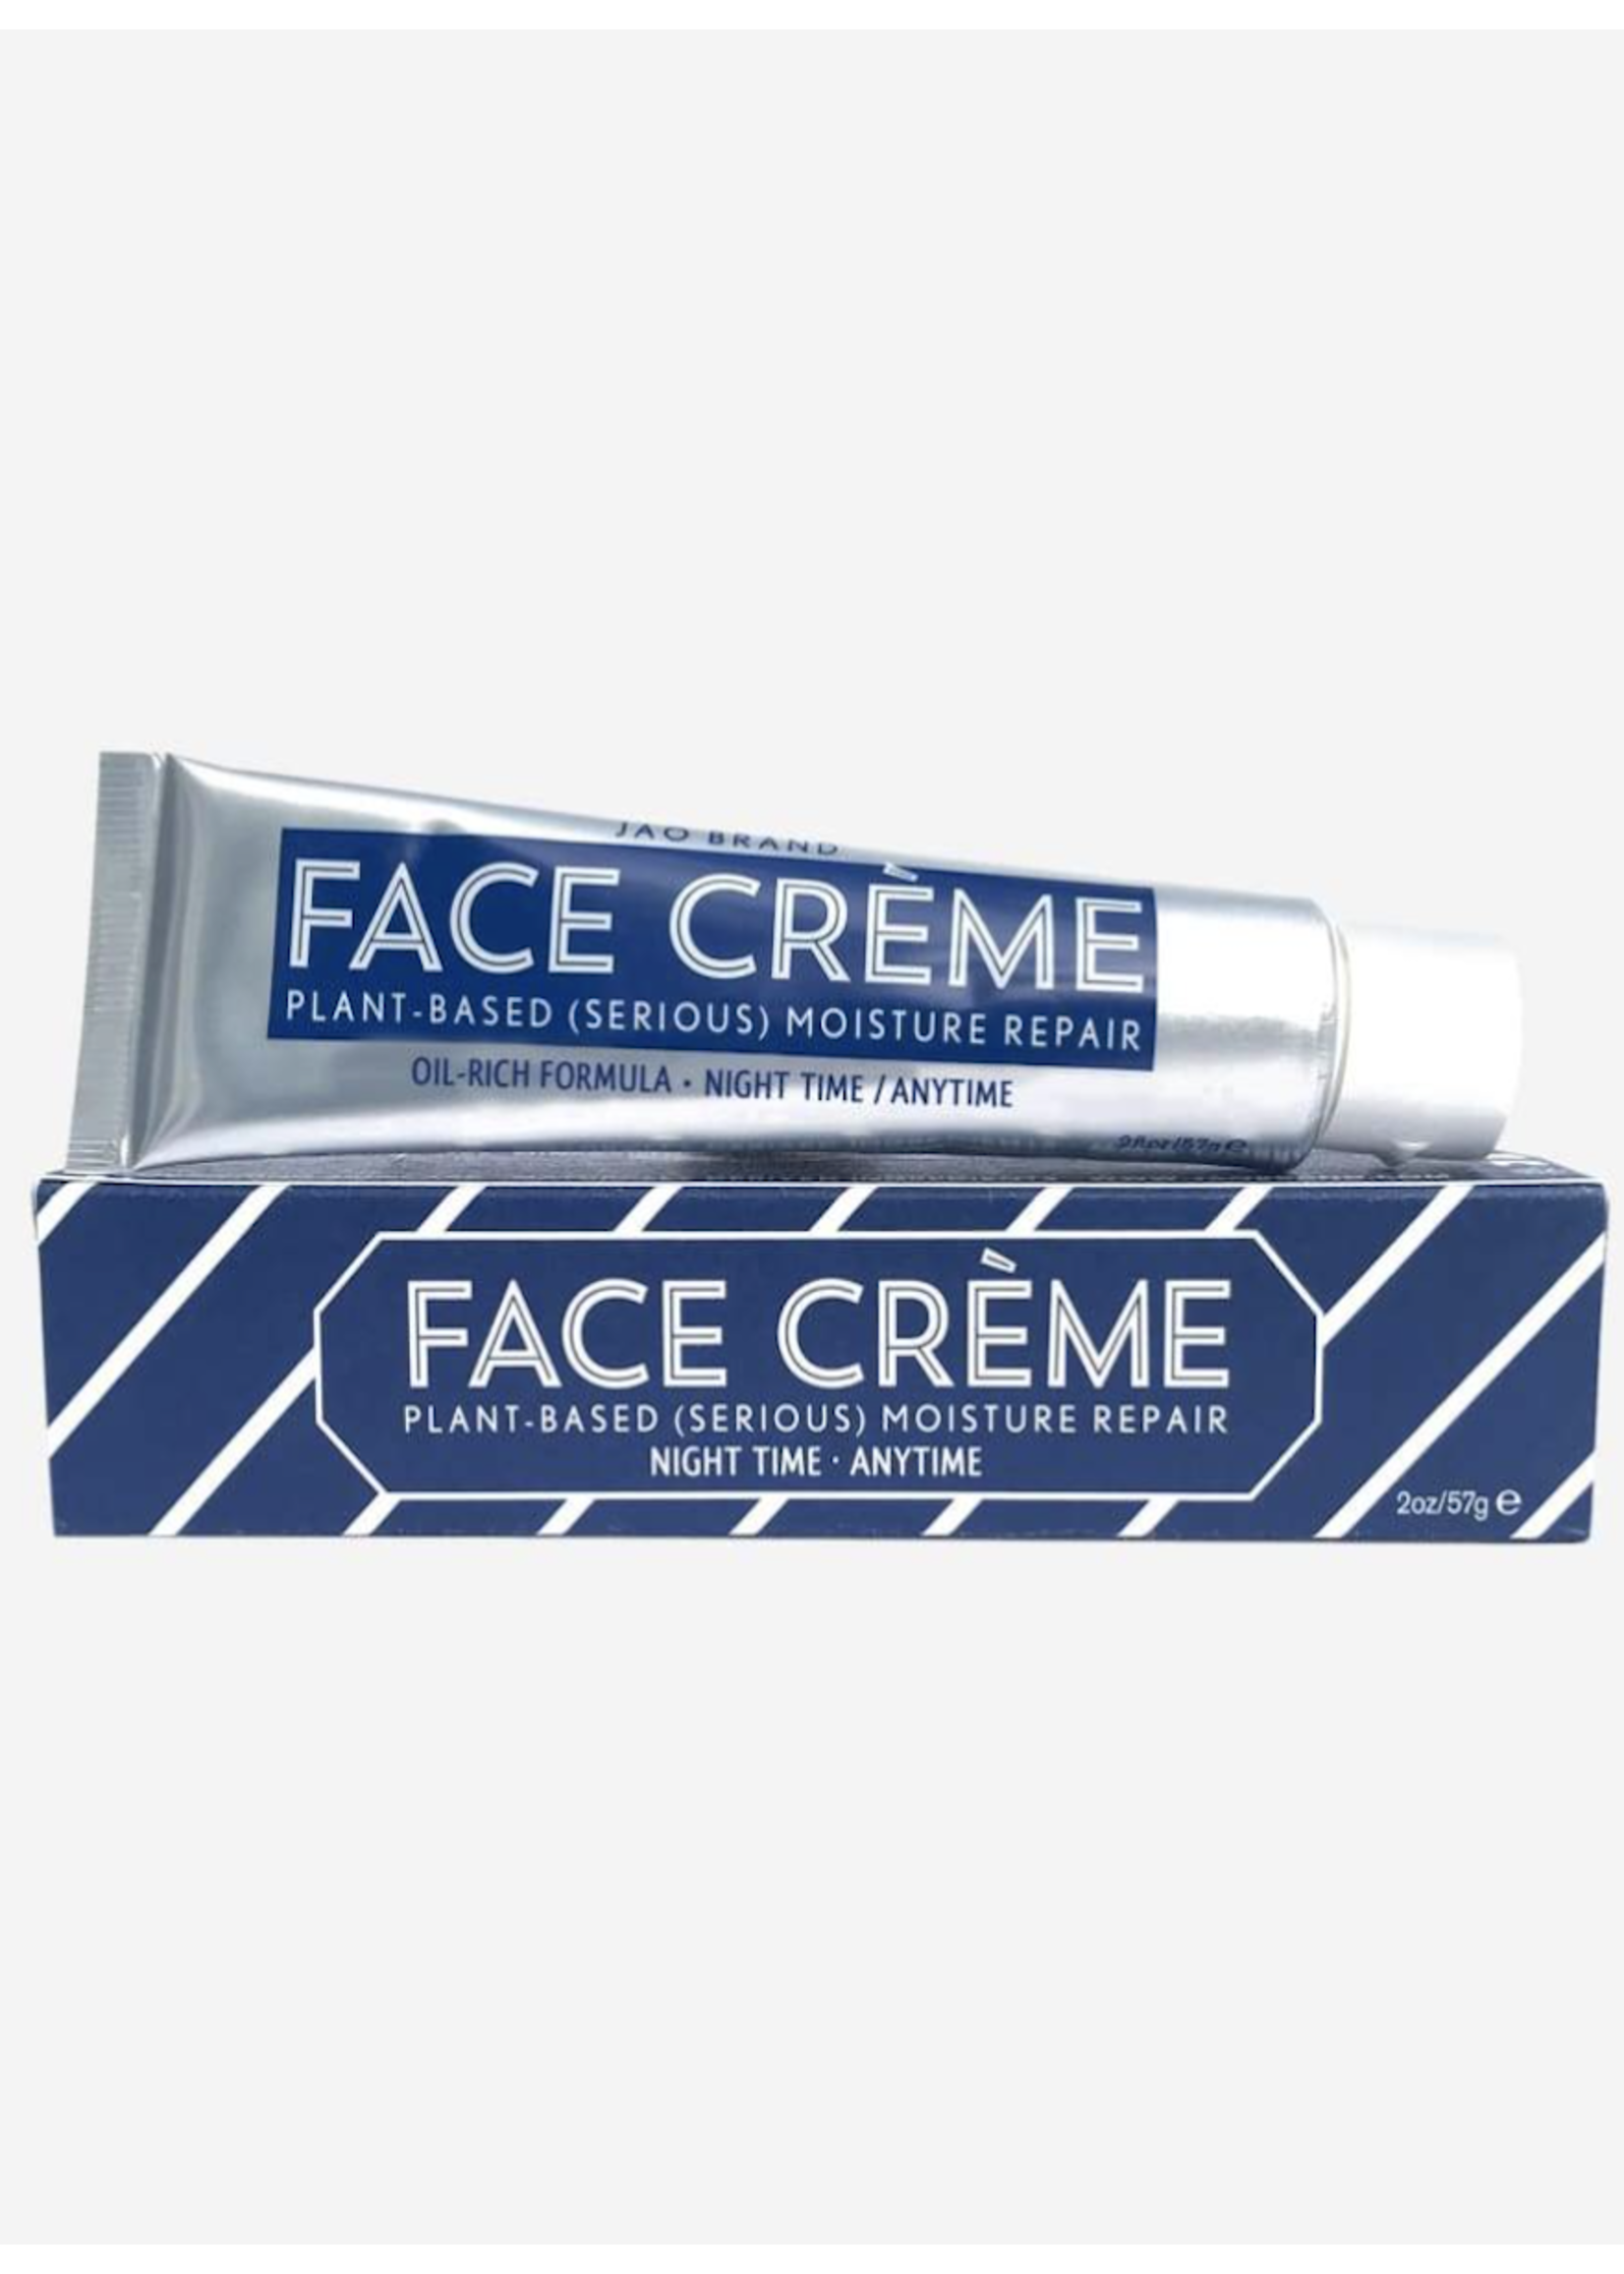 Jao Brand Face Crème Night Time/Anytime